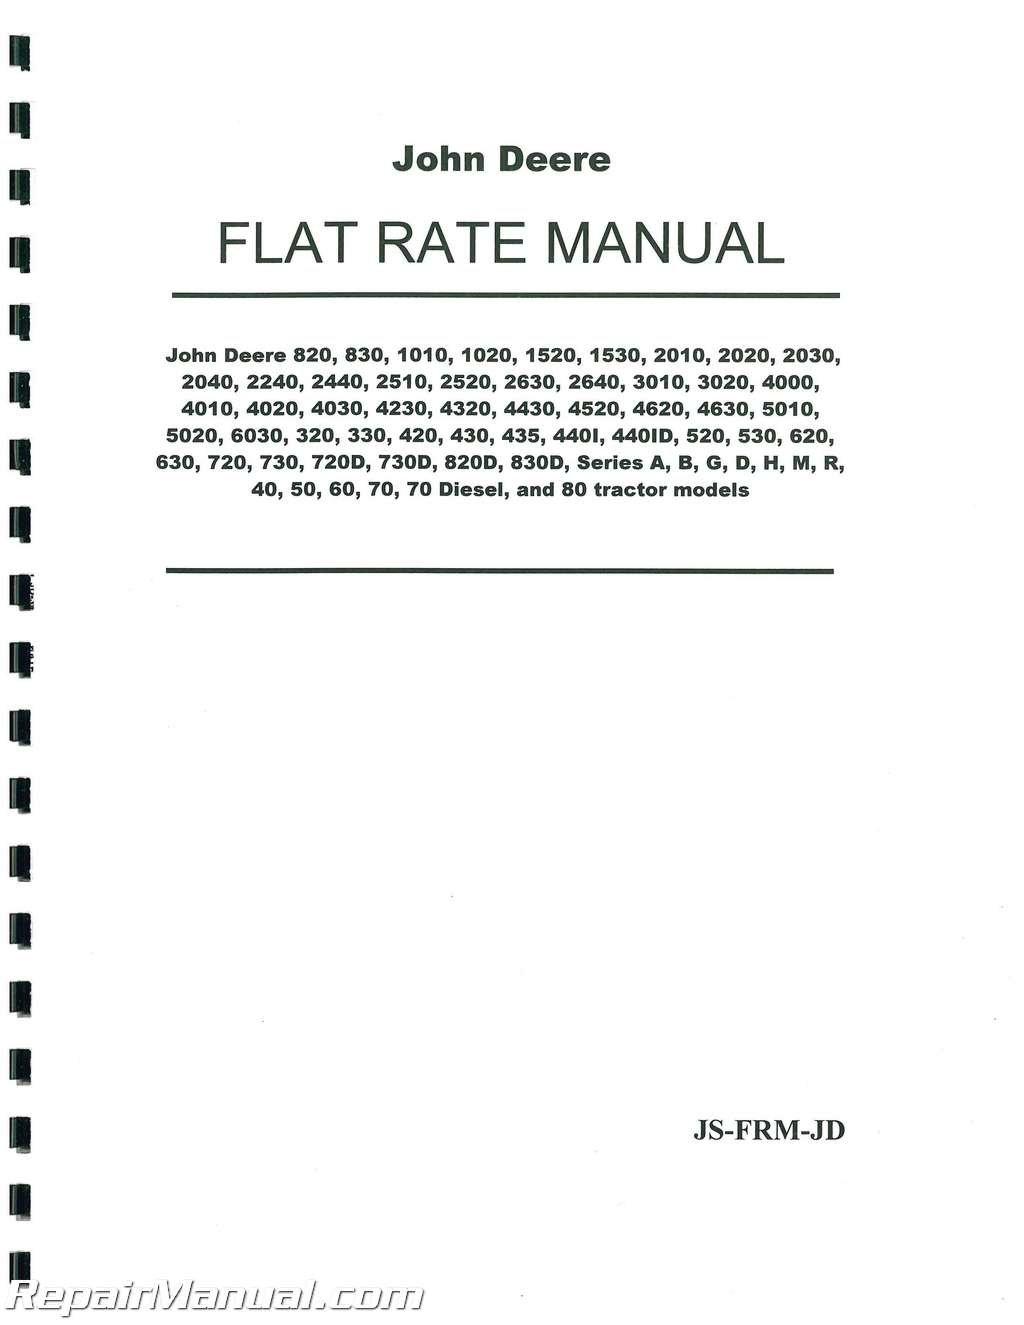 JS-FRM-JD John Deere Tractor Flat Rate Manual: Amazon.com: Books on